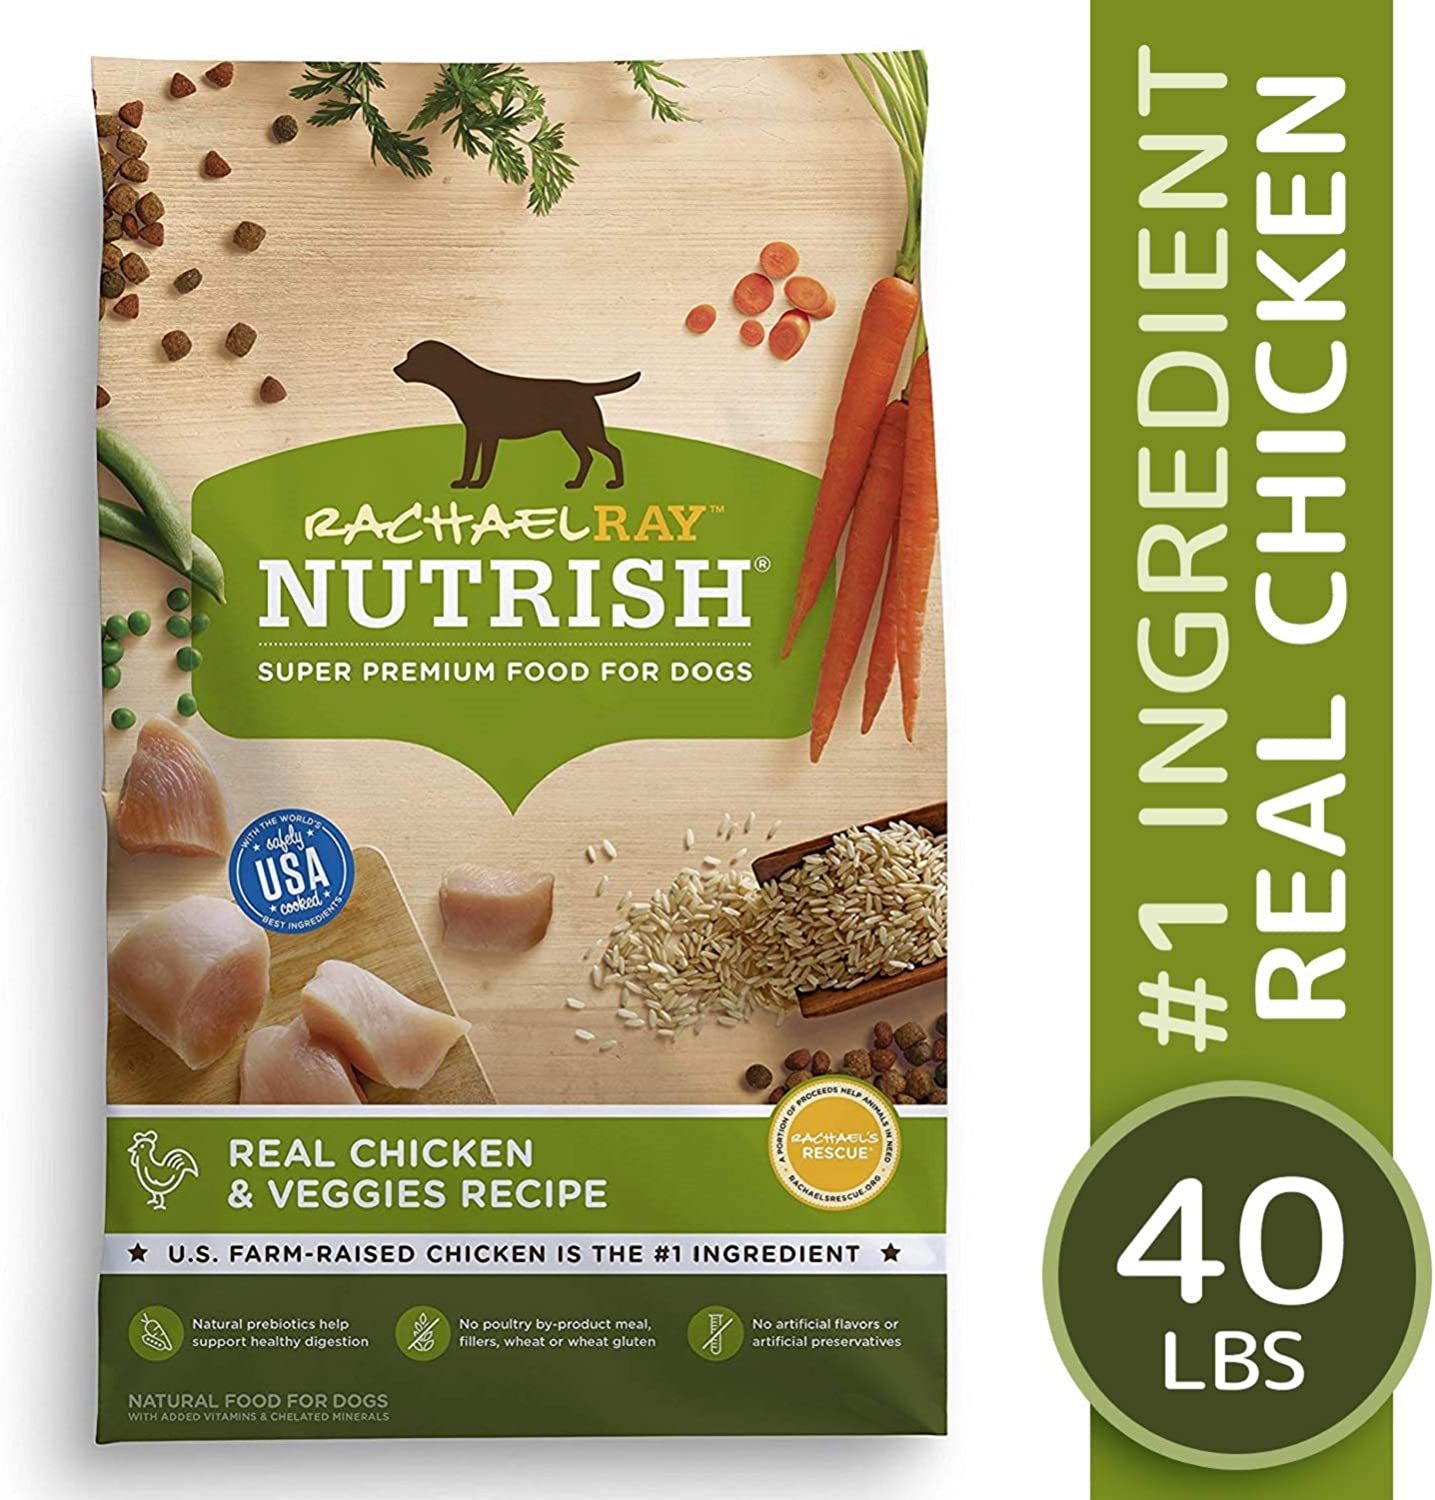 6. Rachael Ray Nutrish Natural Chicken & Veggies Recipe